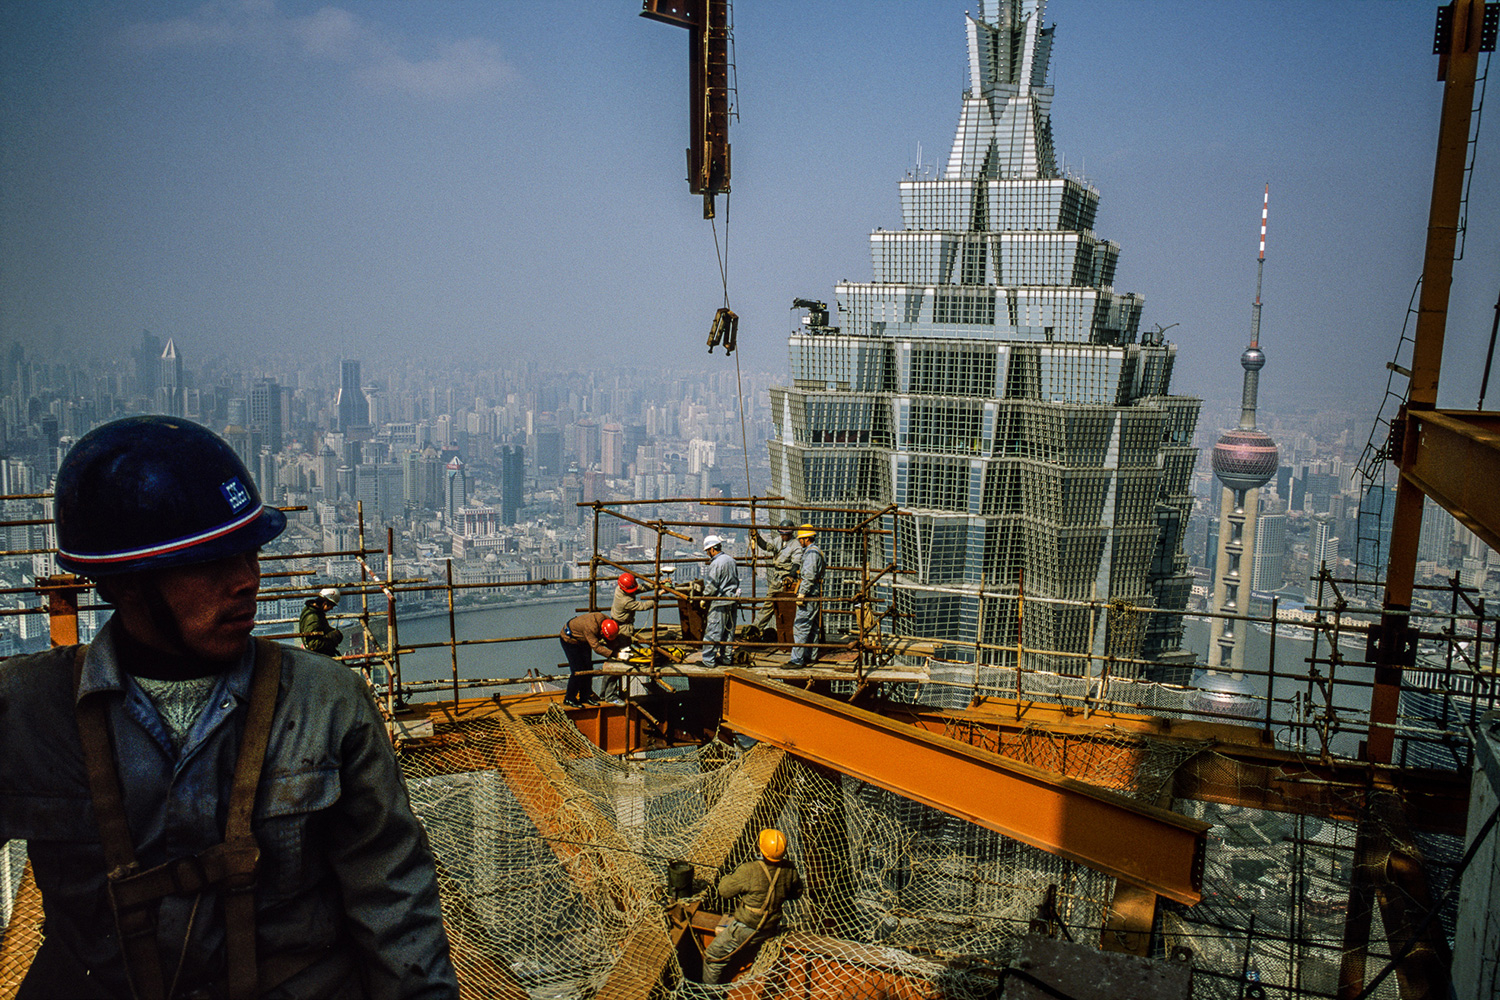 Steel workers from Sichuan set beams on the 88th floor of the Shanghai World Financial Center superstructure under construction in Lujiazui, 2007.